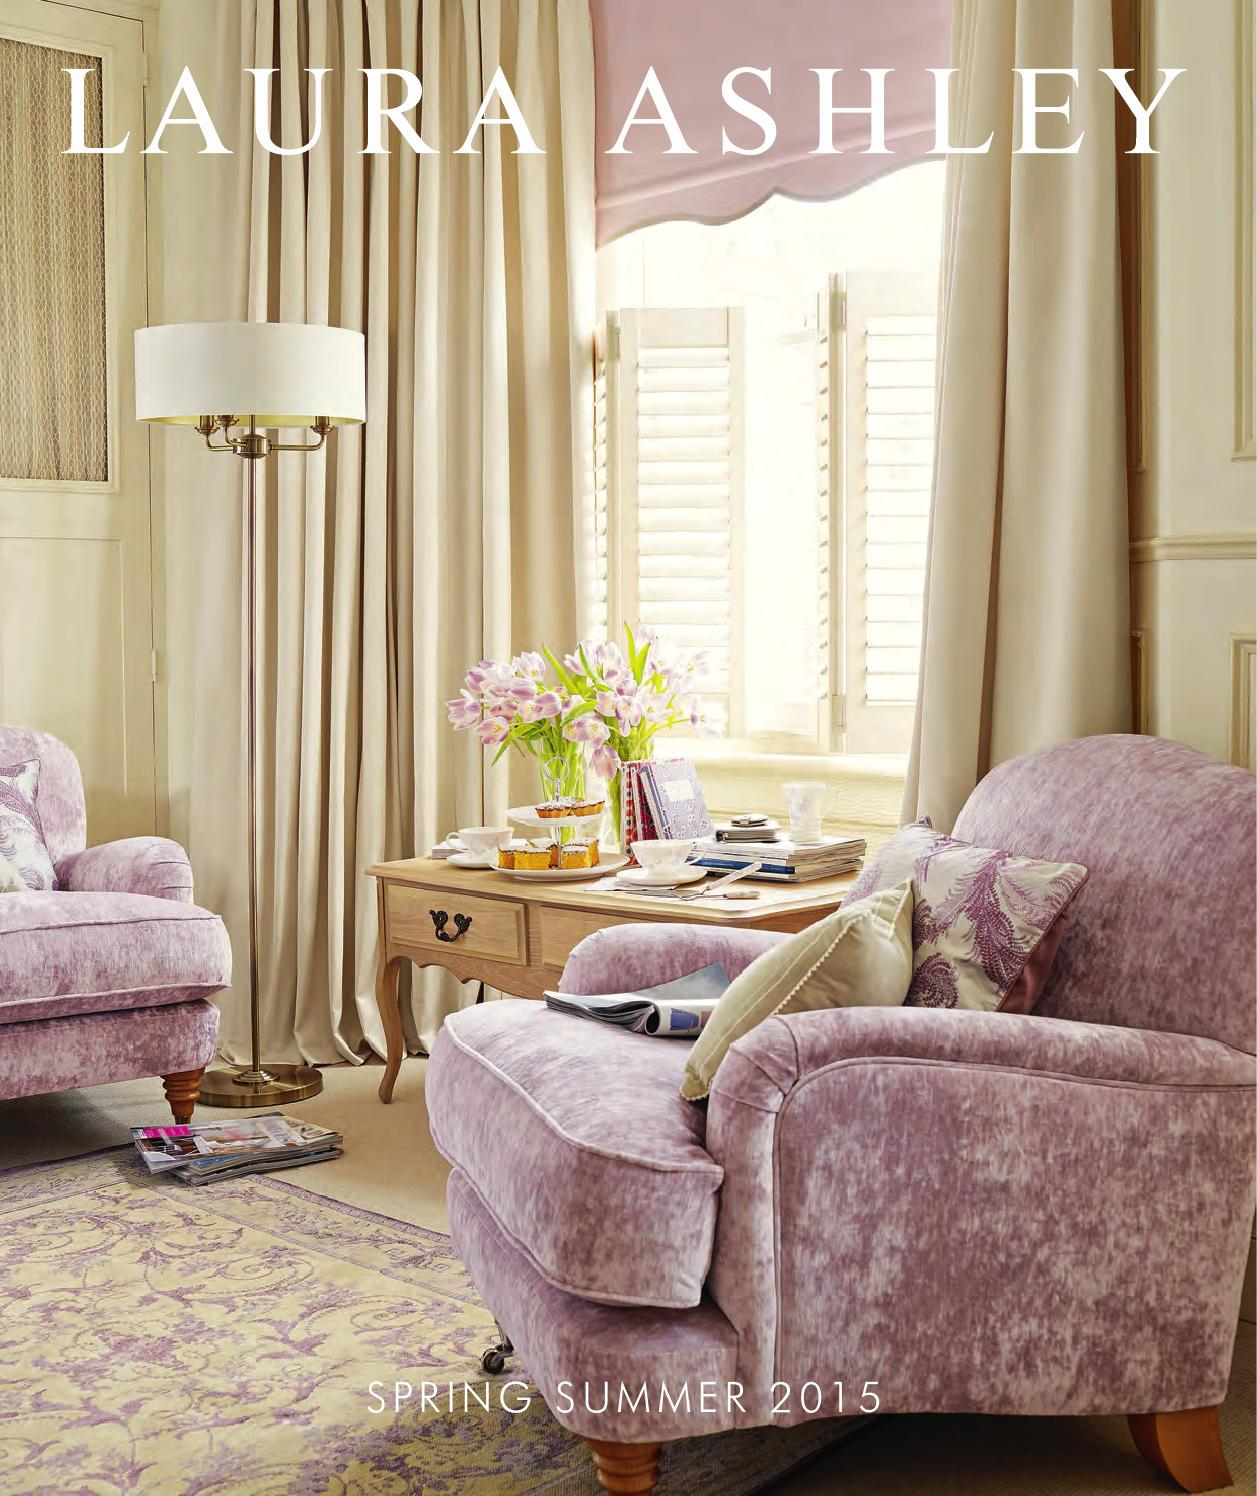 lauraashley ss15 catalog by laura ashley sweden issuu. Black Bedroom Furniture Sets. Home Design Ideas